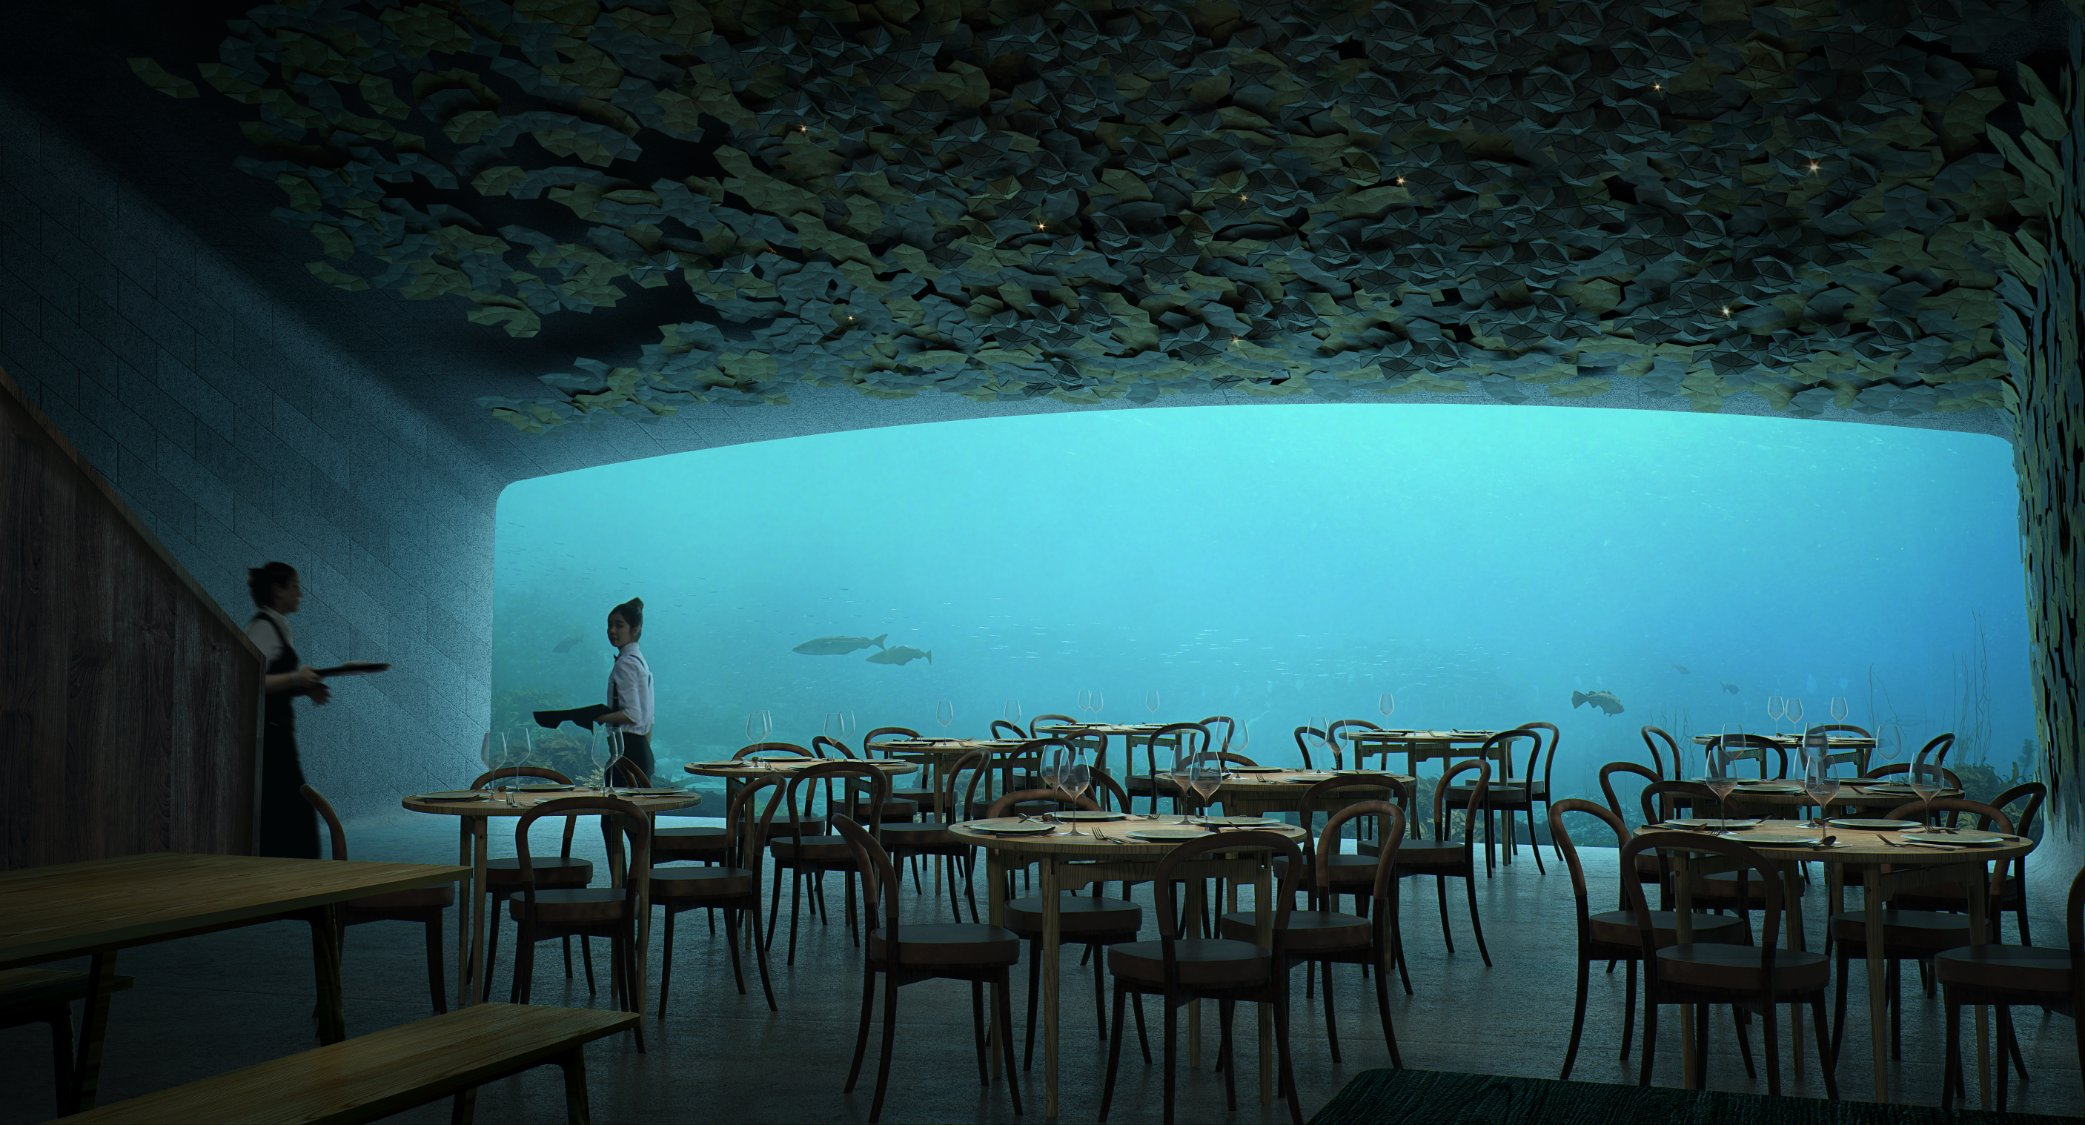 underwater restaurant Norwegian Architecture Firm Reveals Project for First Underwater Restaurant 3 Norwegian Architecture Firm Reveals Project for First Underwater Restaurant